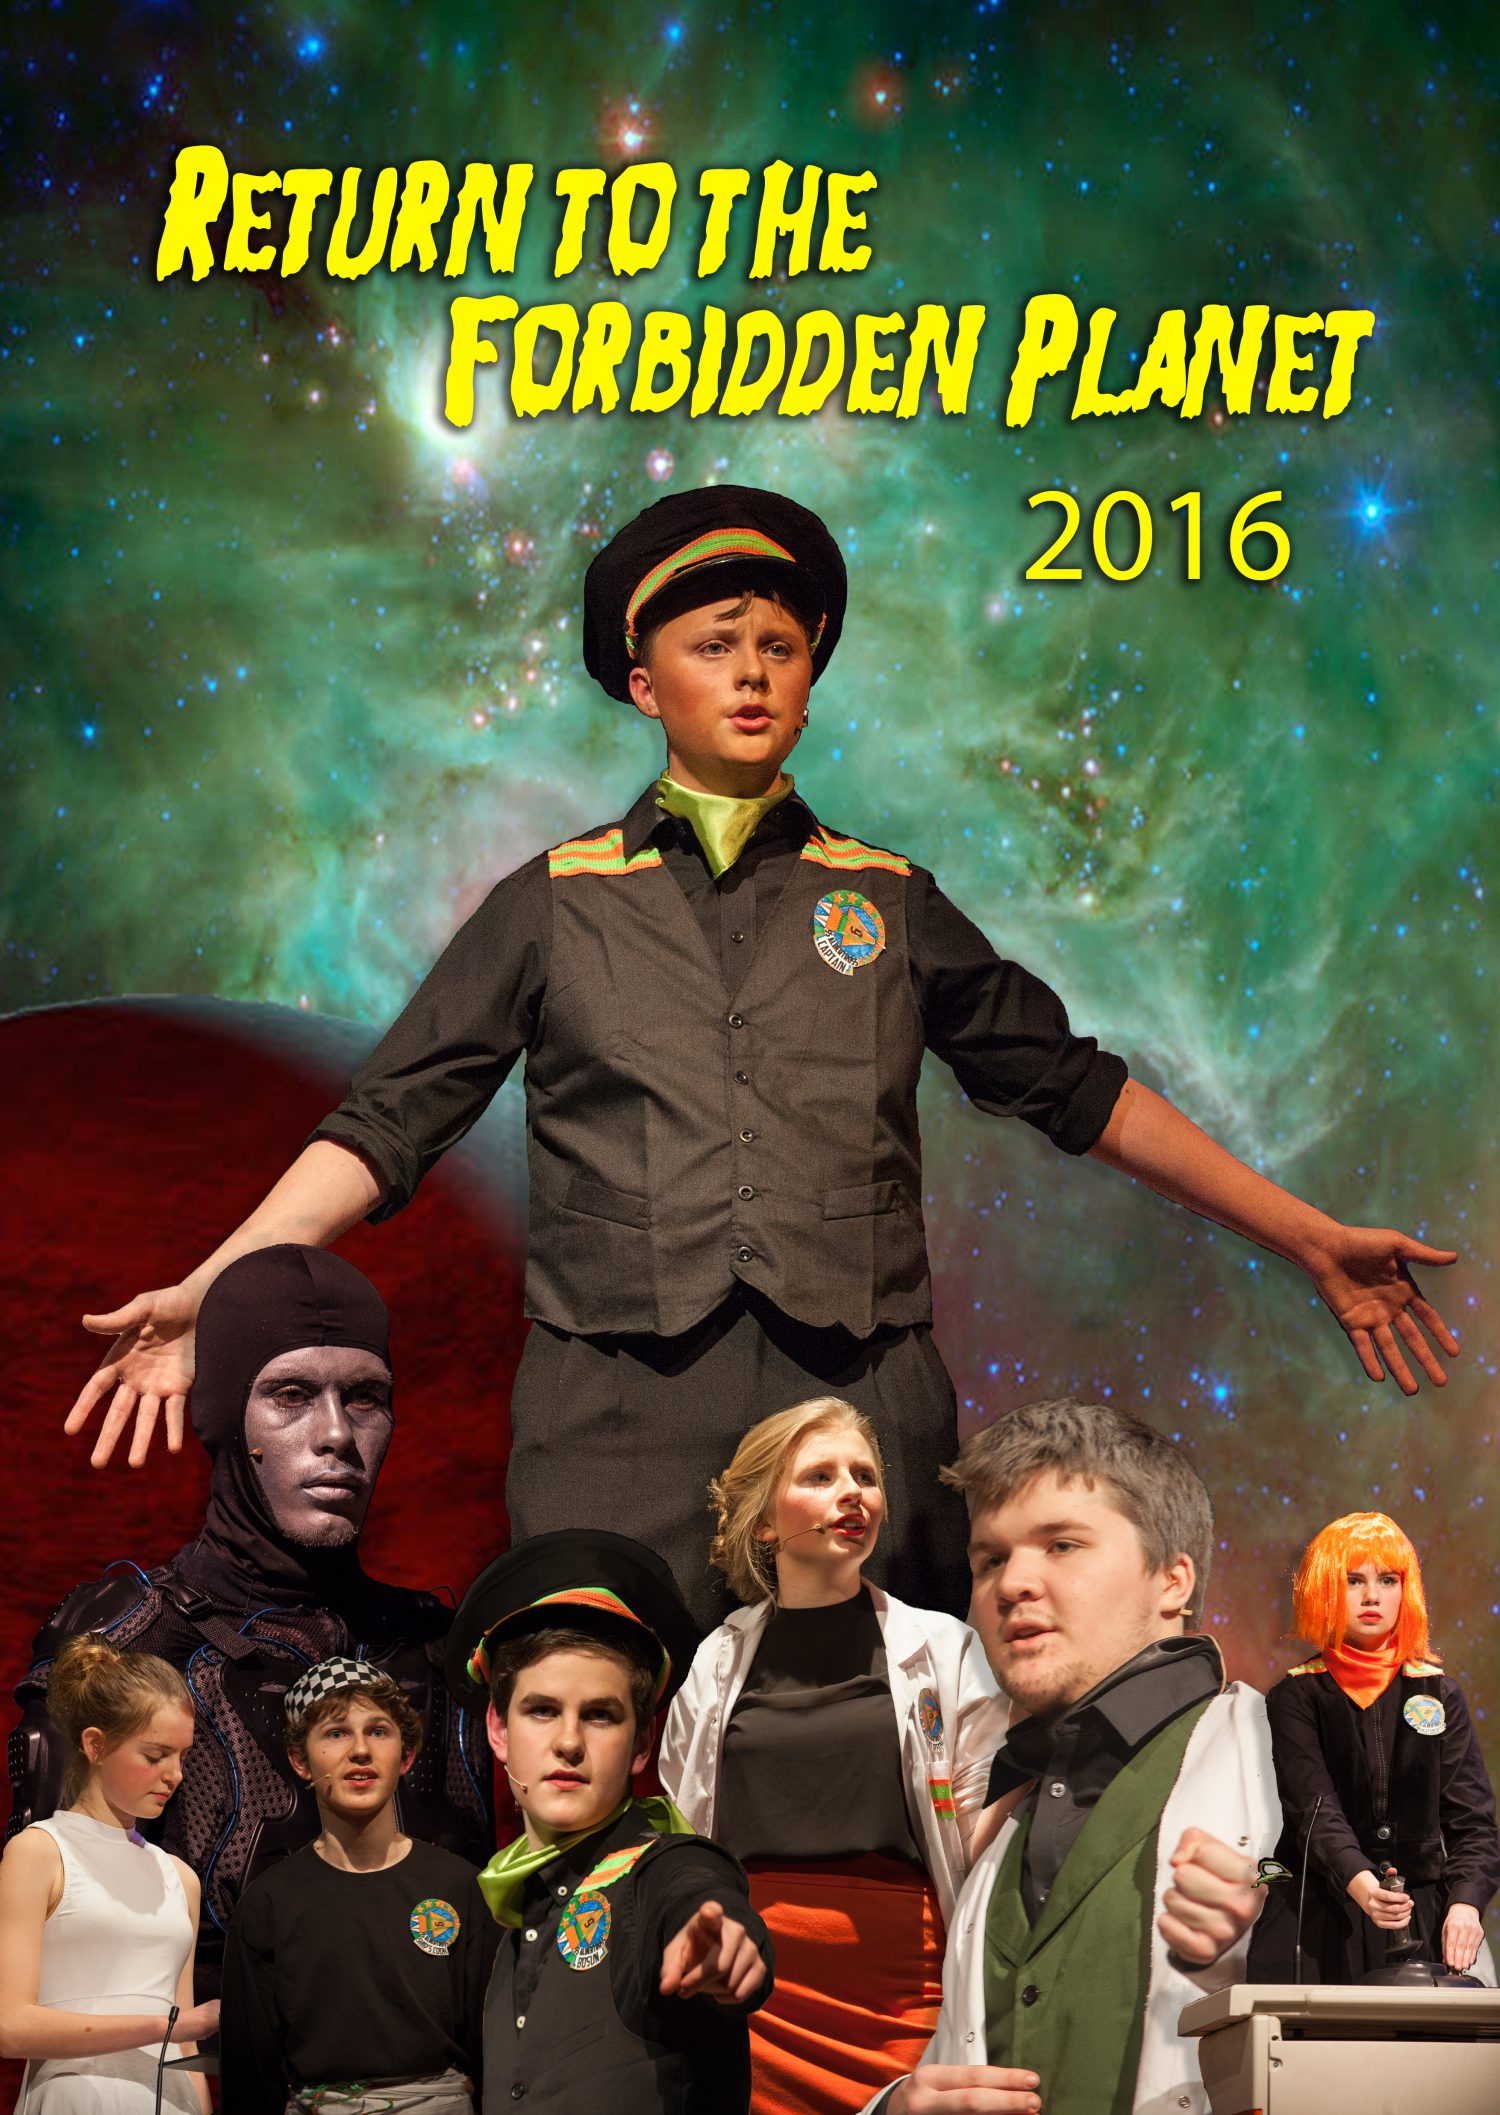 Return to the Forbidden Planet, 2016